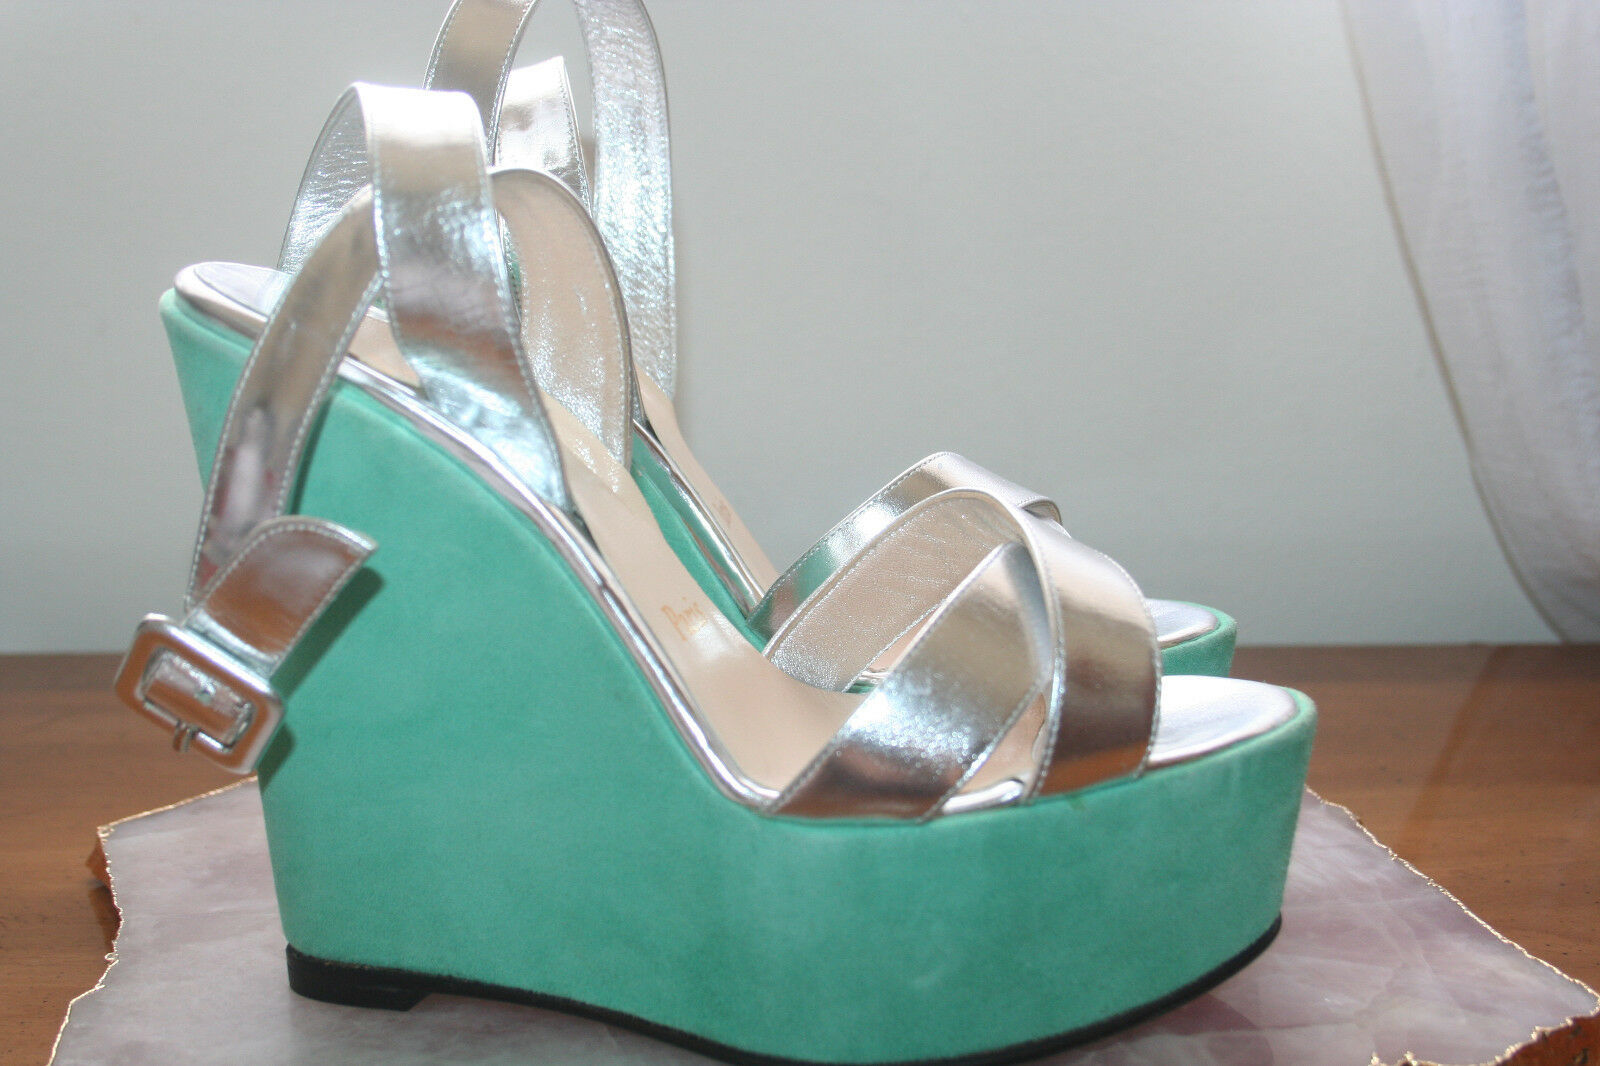 Christian Louboutin Teal Silver Suede Leather Platform Wedge Sandals    Sz 36.5